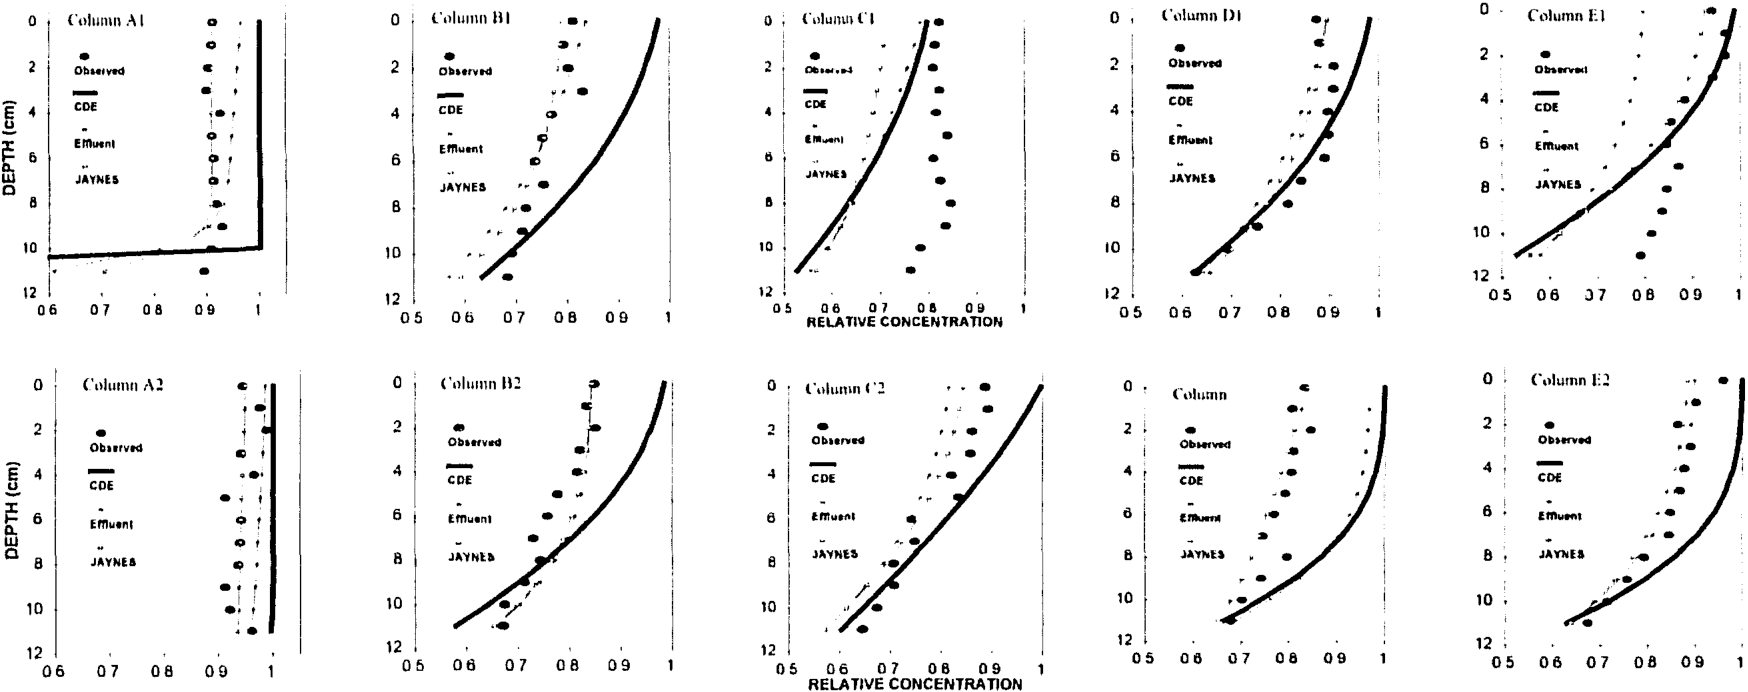 Figure 6. Measured and calculated resident concentrations.